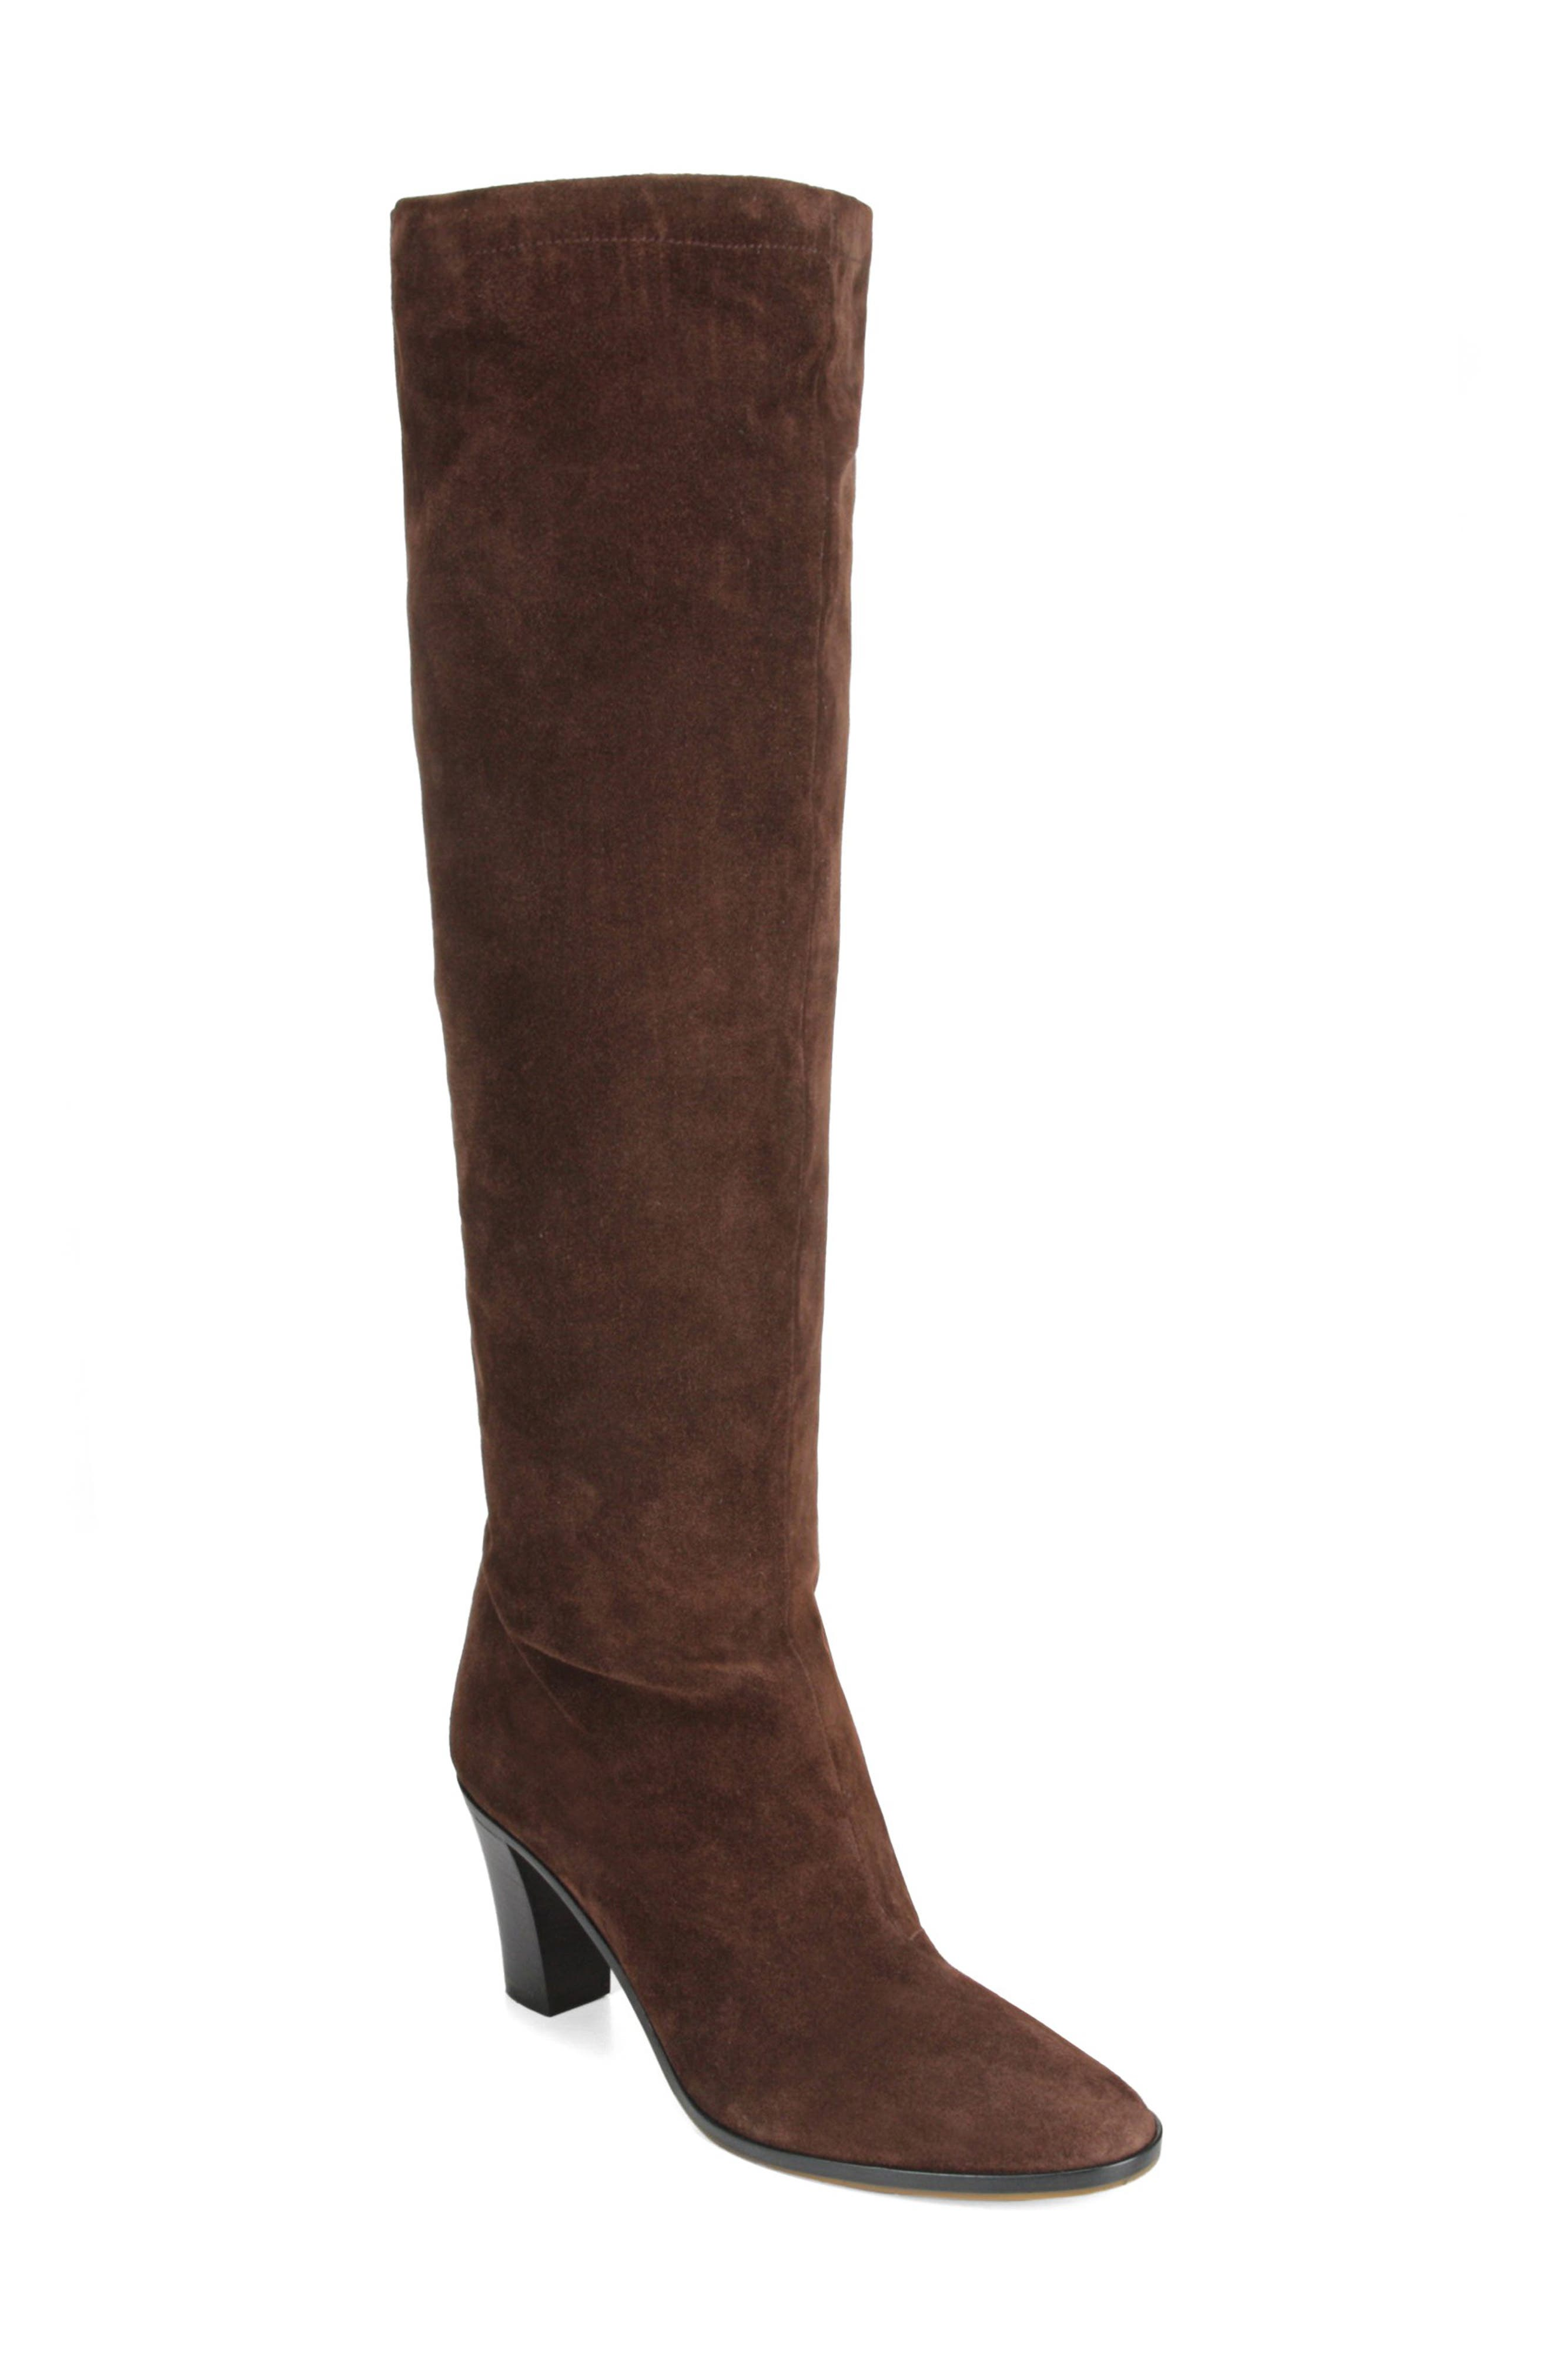 Casper Knee High Pull-On Boot,                         Main,                         color, COTTO BROWN